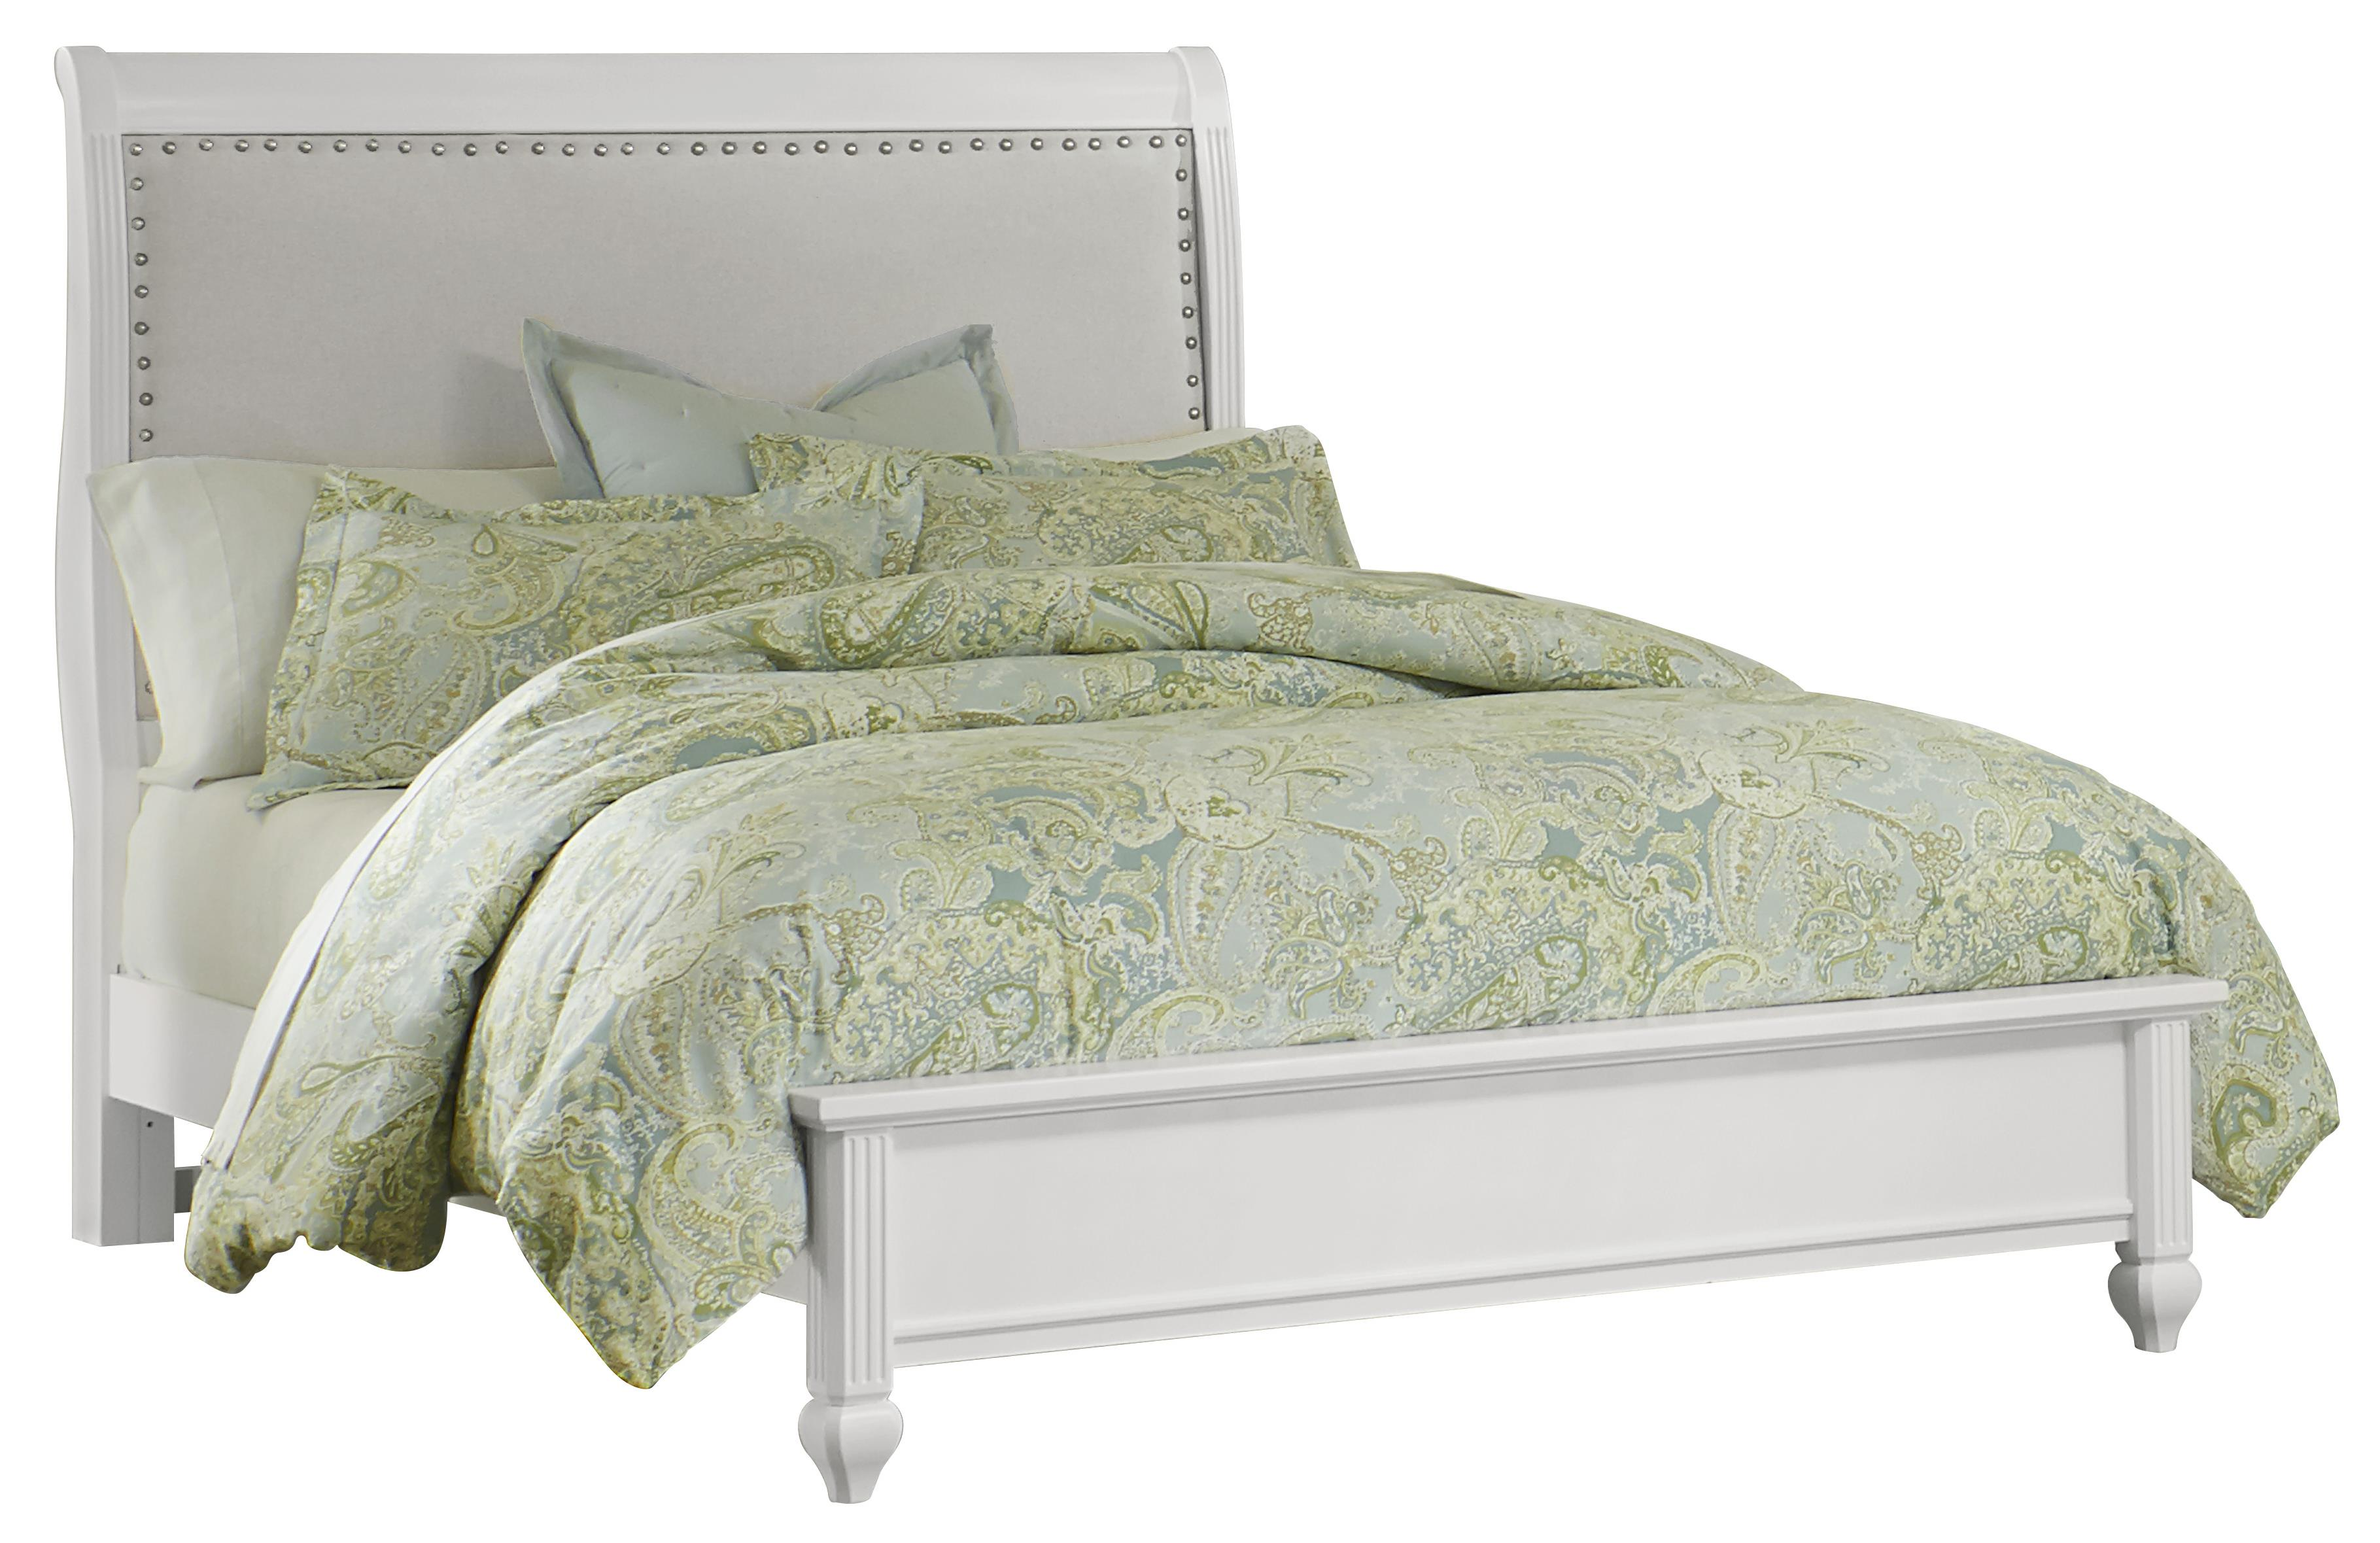 Vaughan Bassett French Market Full Bed w/ Upholstered Headboard - Item Number: 384-333+344+911